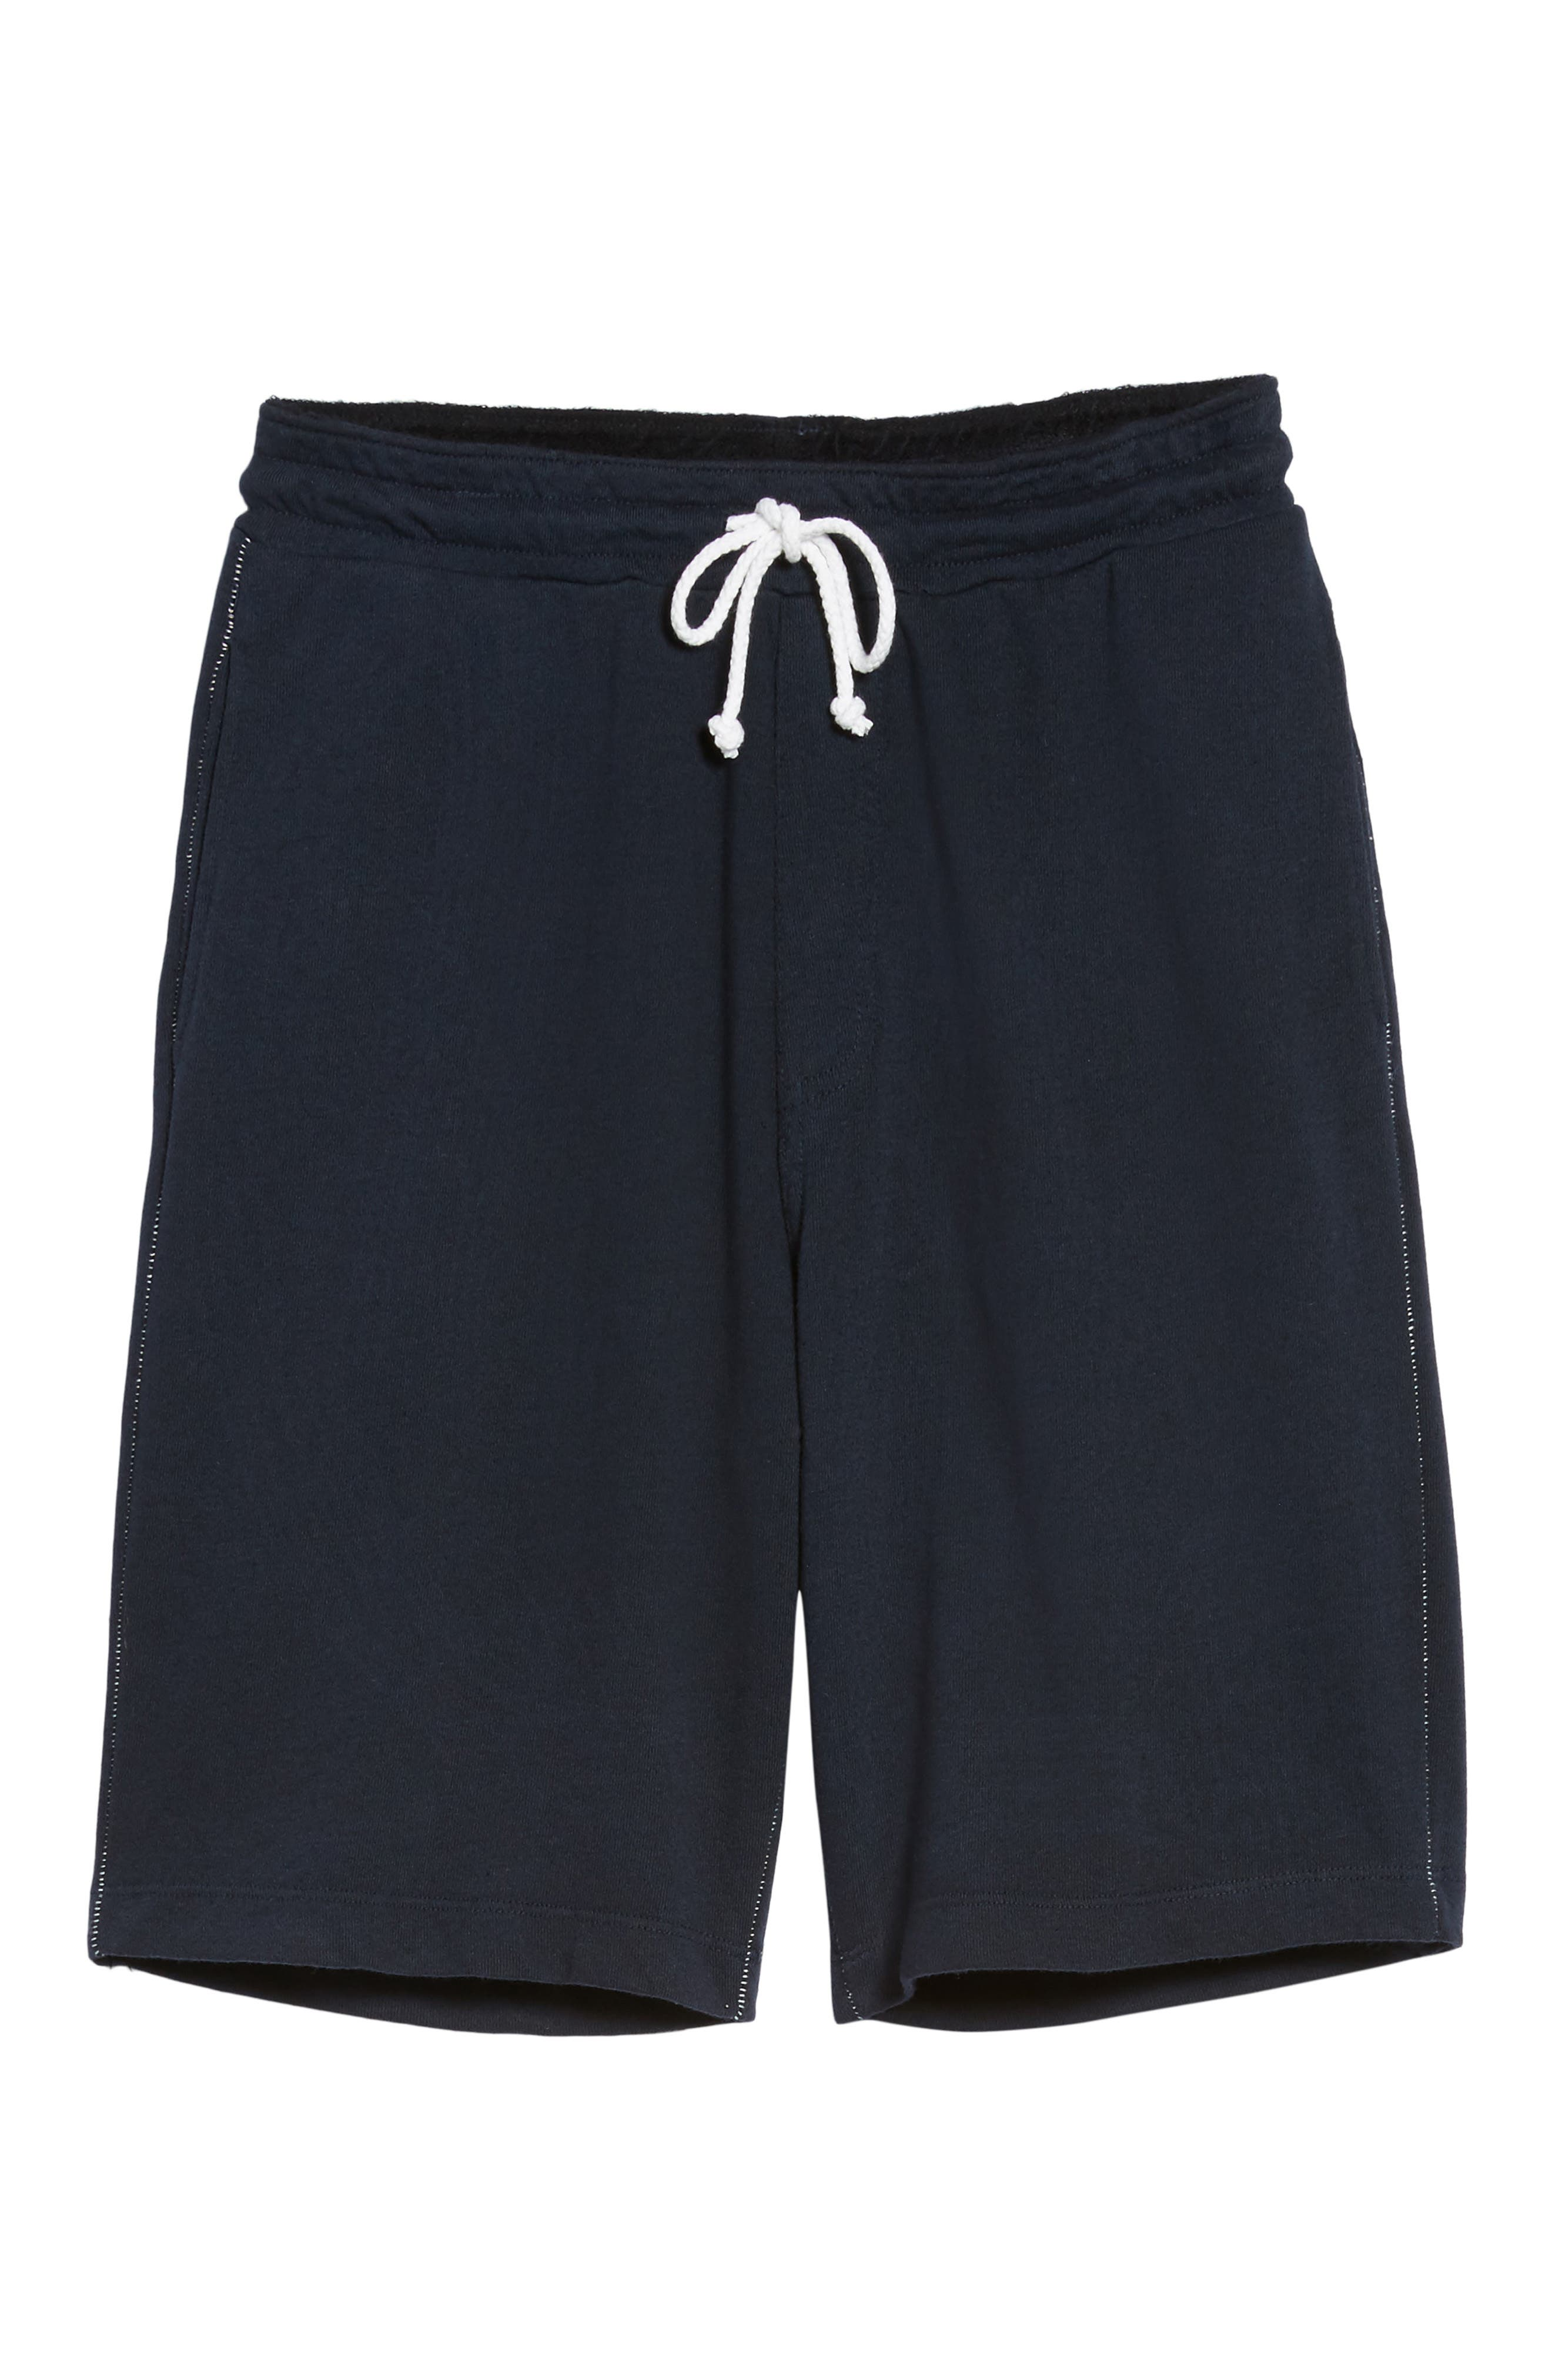 Lounge Sweat Shorts,                             Alternate thumbnail 6, color,                             Navy